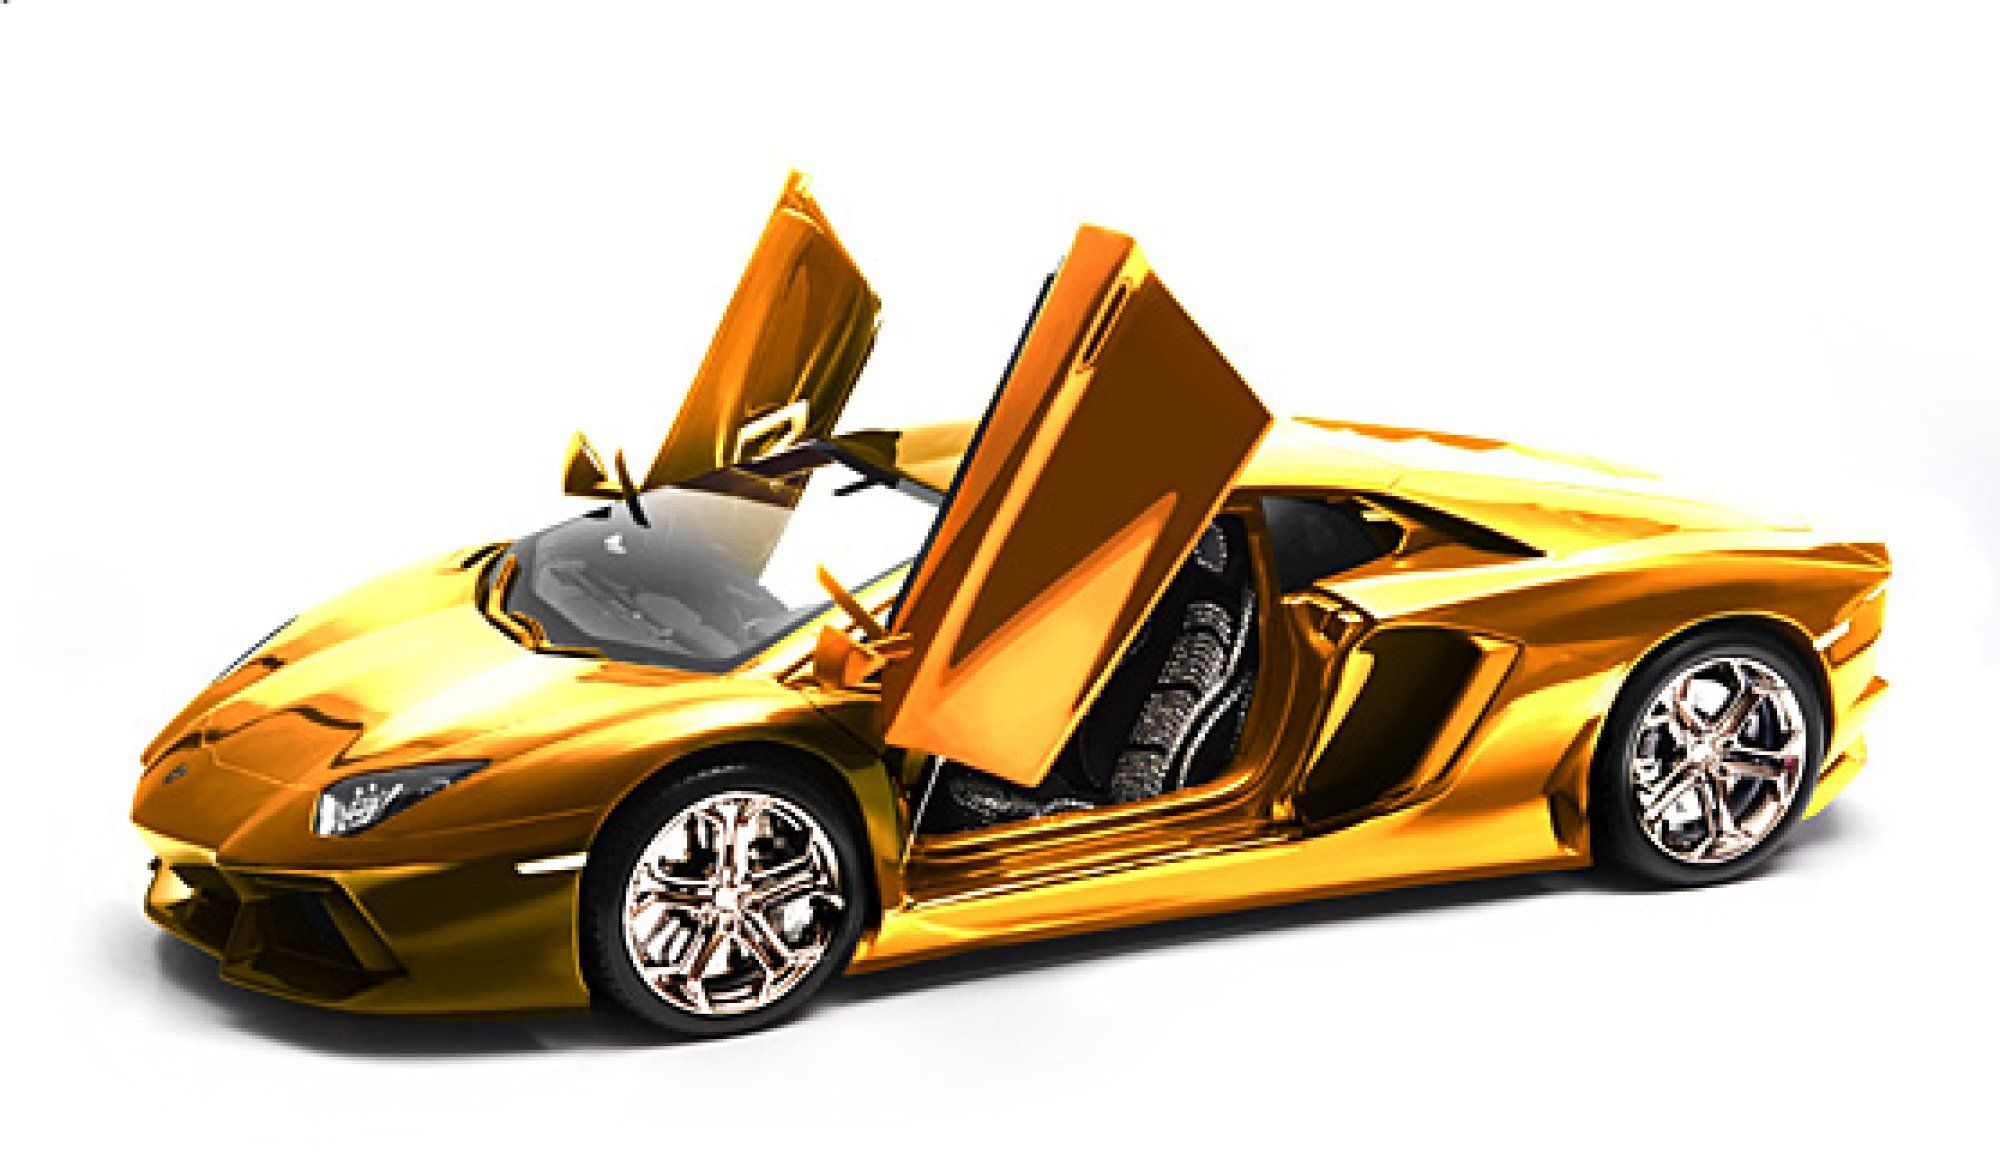 This Model Car Has A 7 5 Million Price Tag With Images Gold